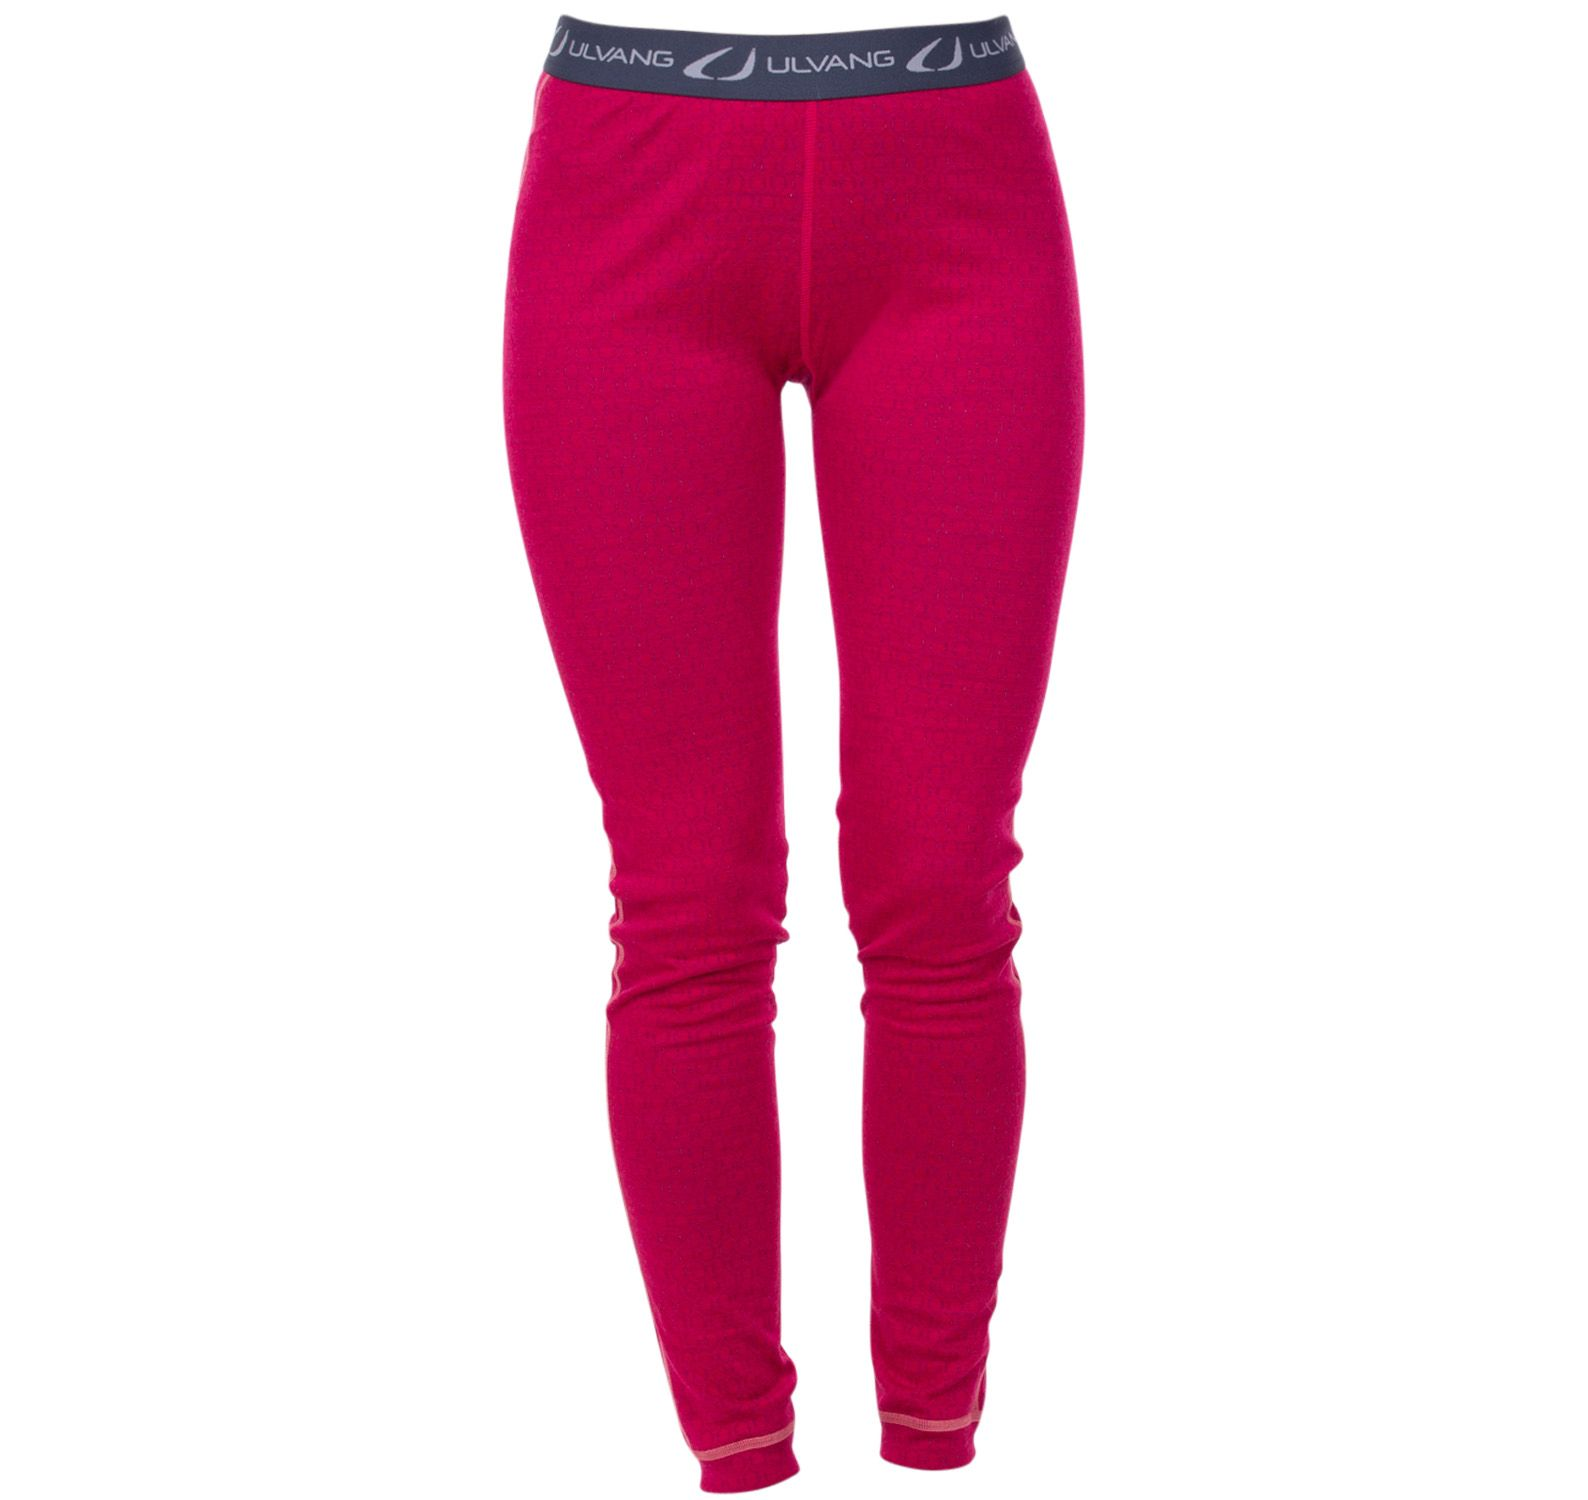 50fifty 2.0 pant ws, heady magenta/charcoal melange, l,  ulvang underställ